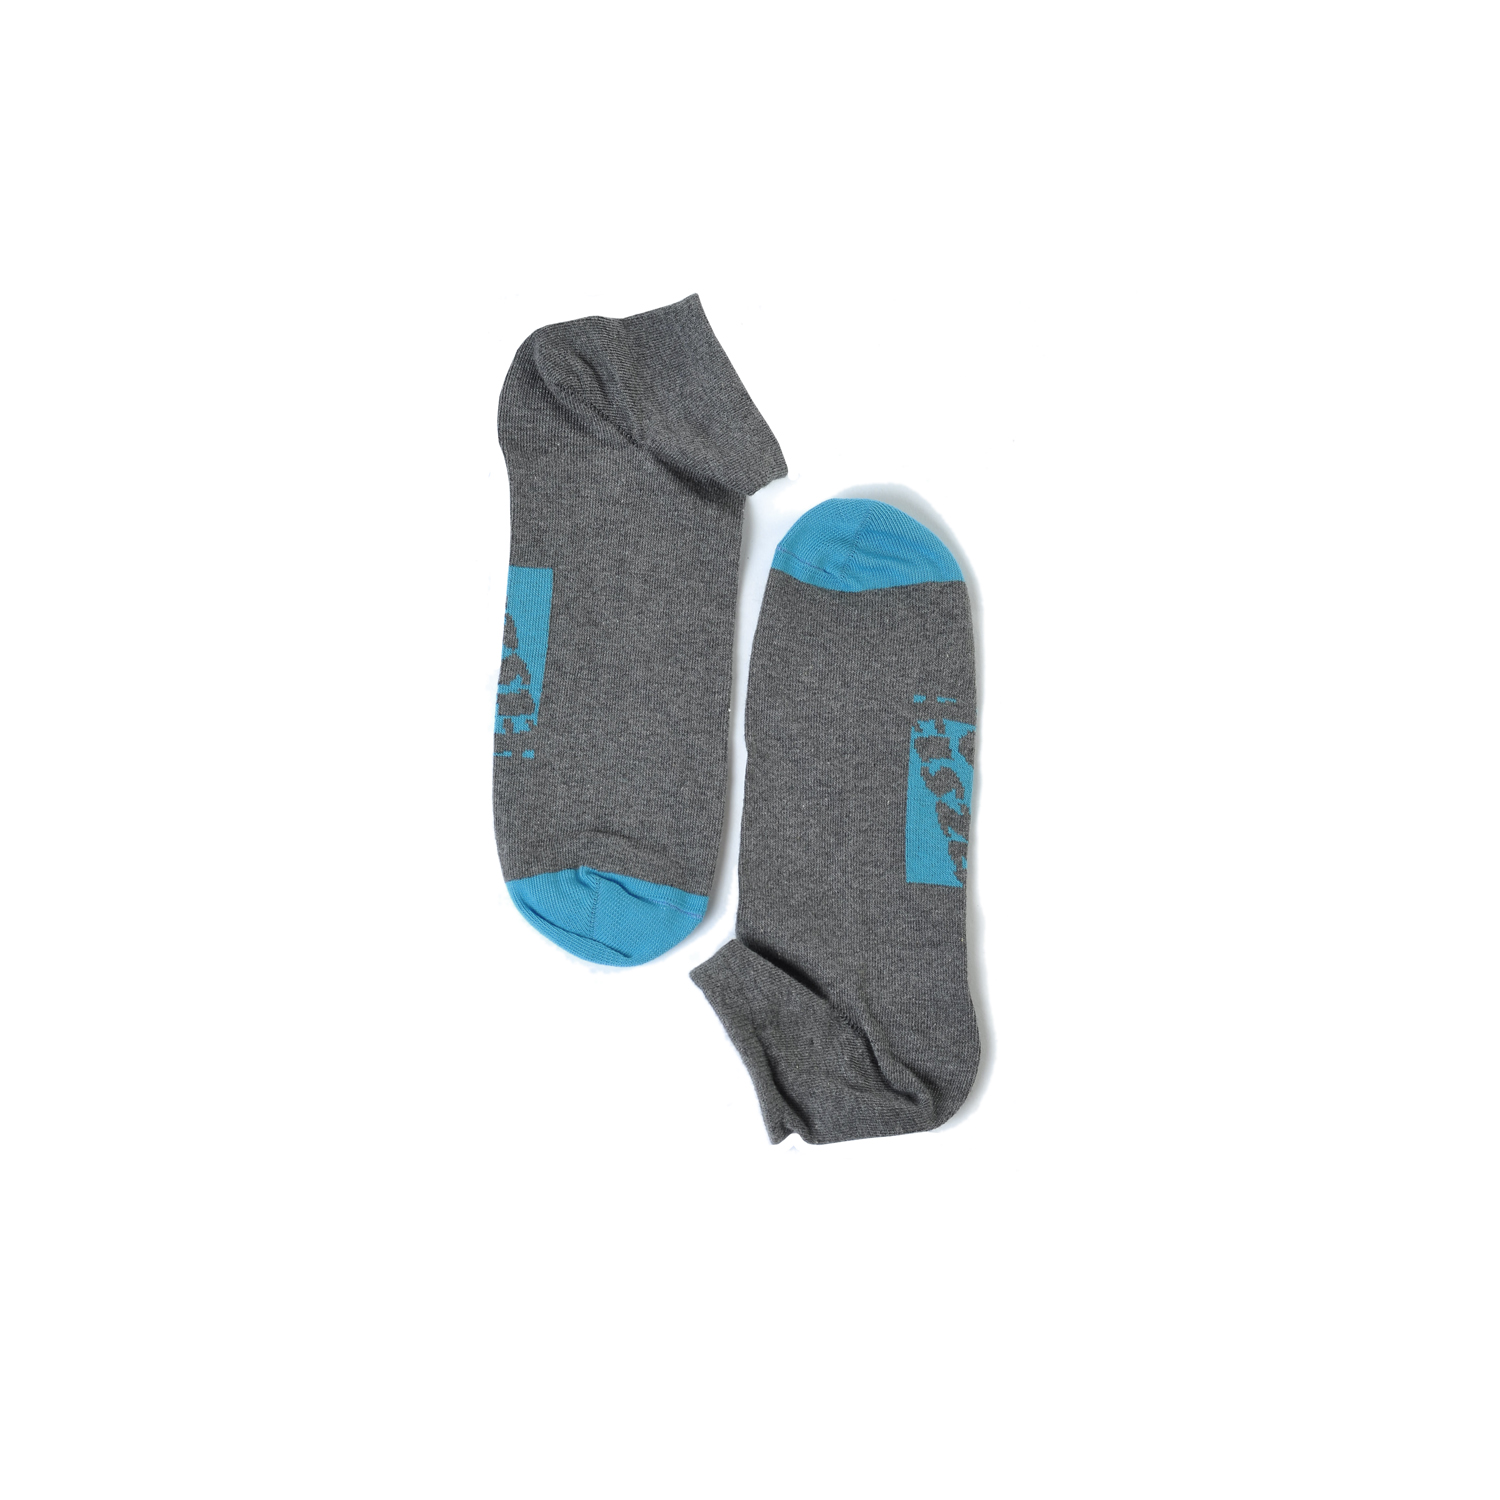 Tisza shoes - Socks - Grey-lightblue